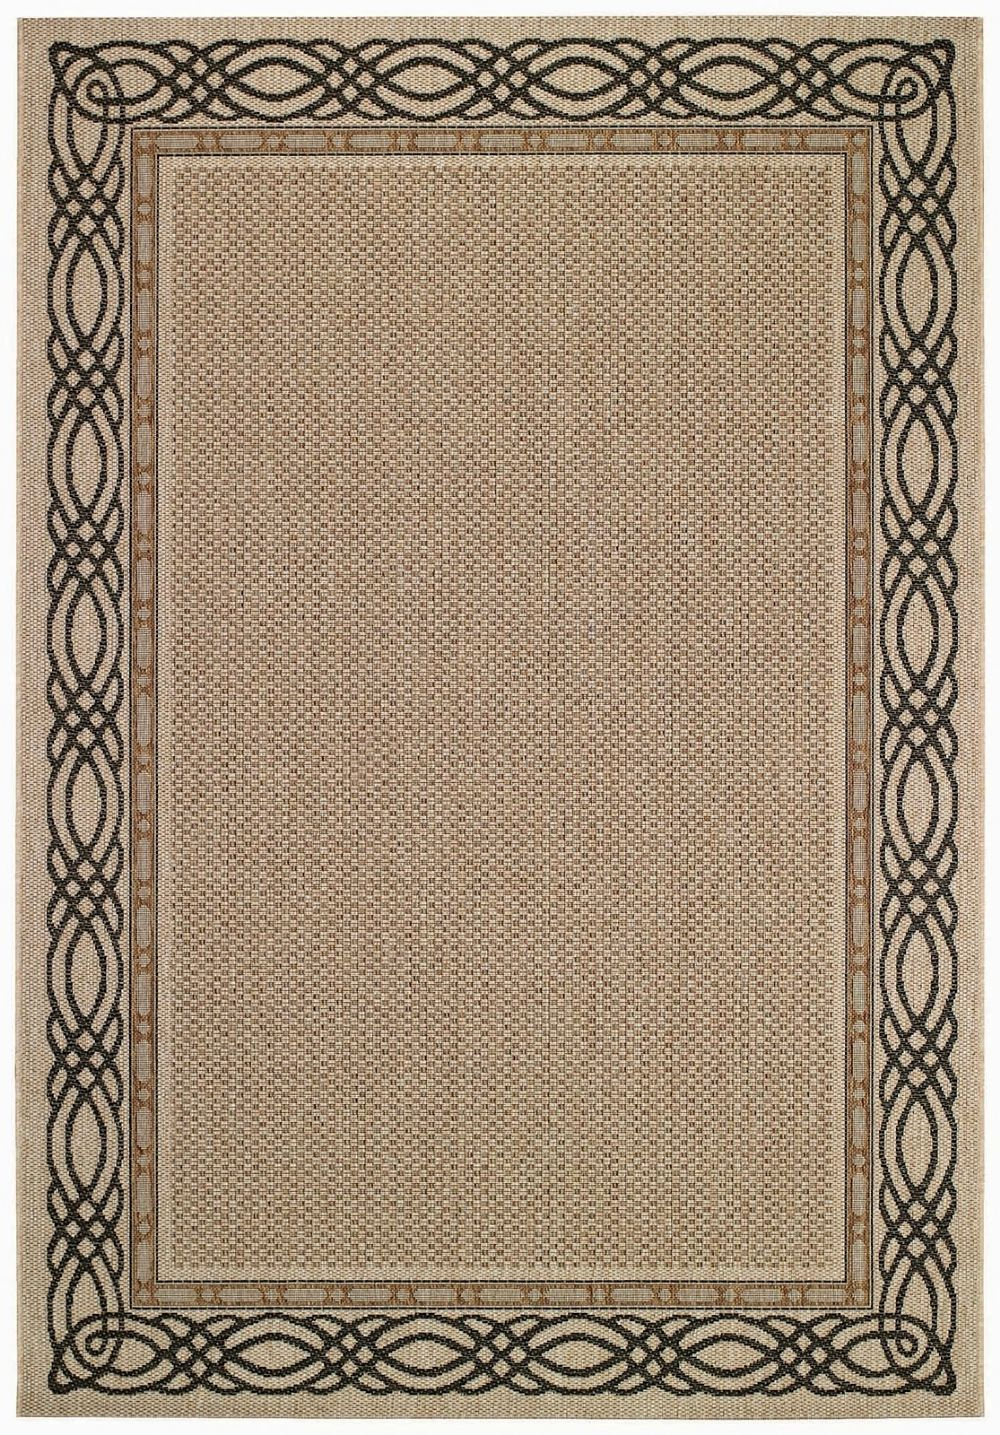 capel springs-spiral contemporary area rug collection